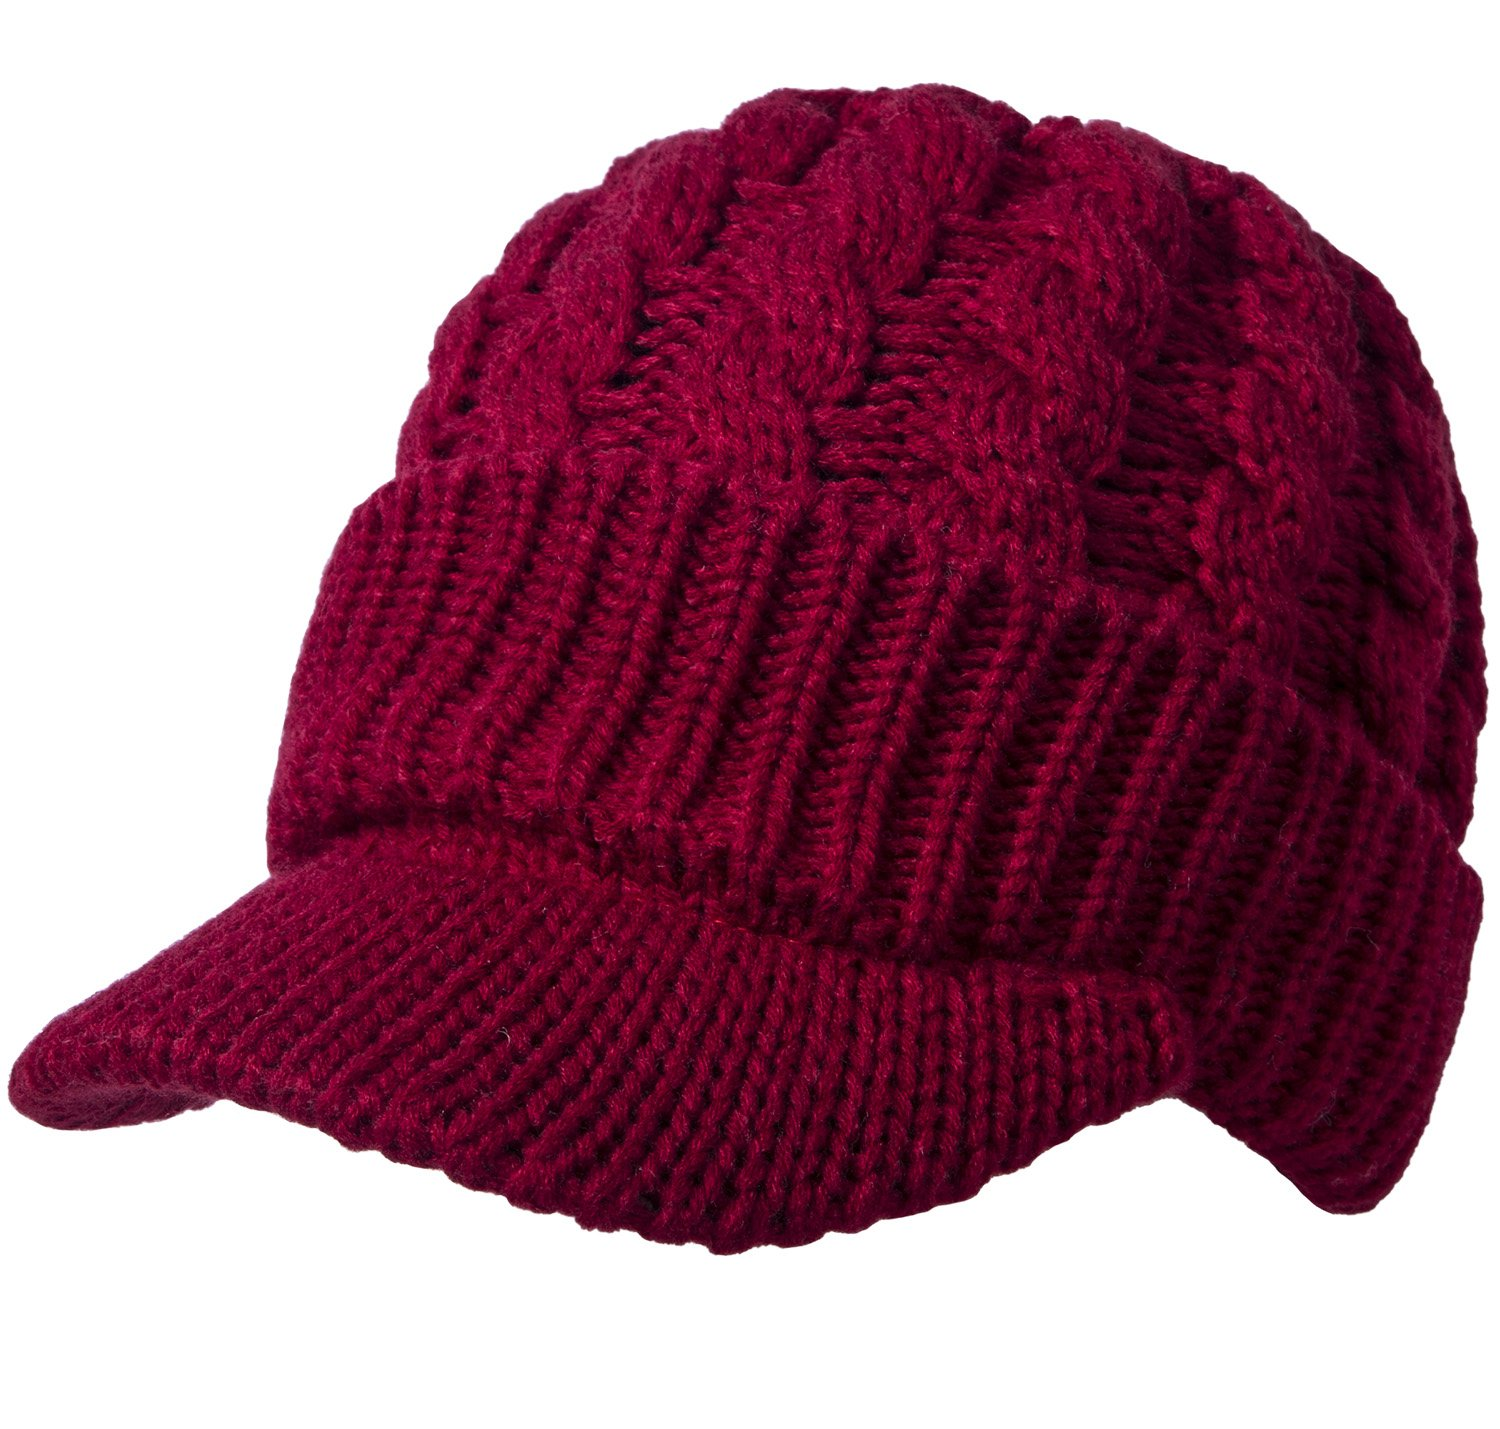 Womens Cable Skullies and Beanies, Red, One Size Dash